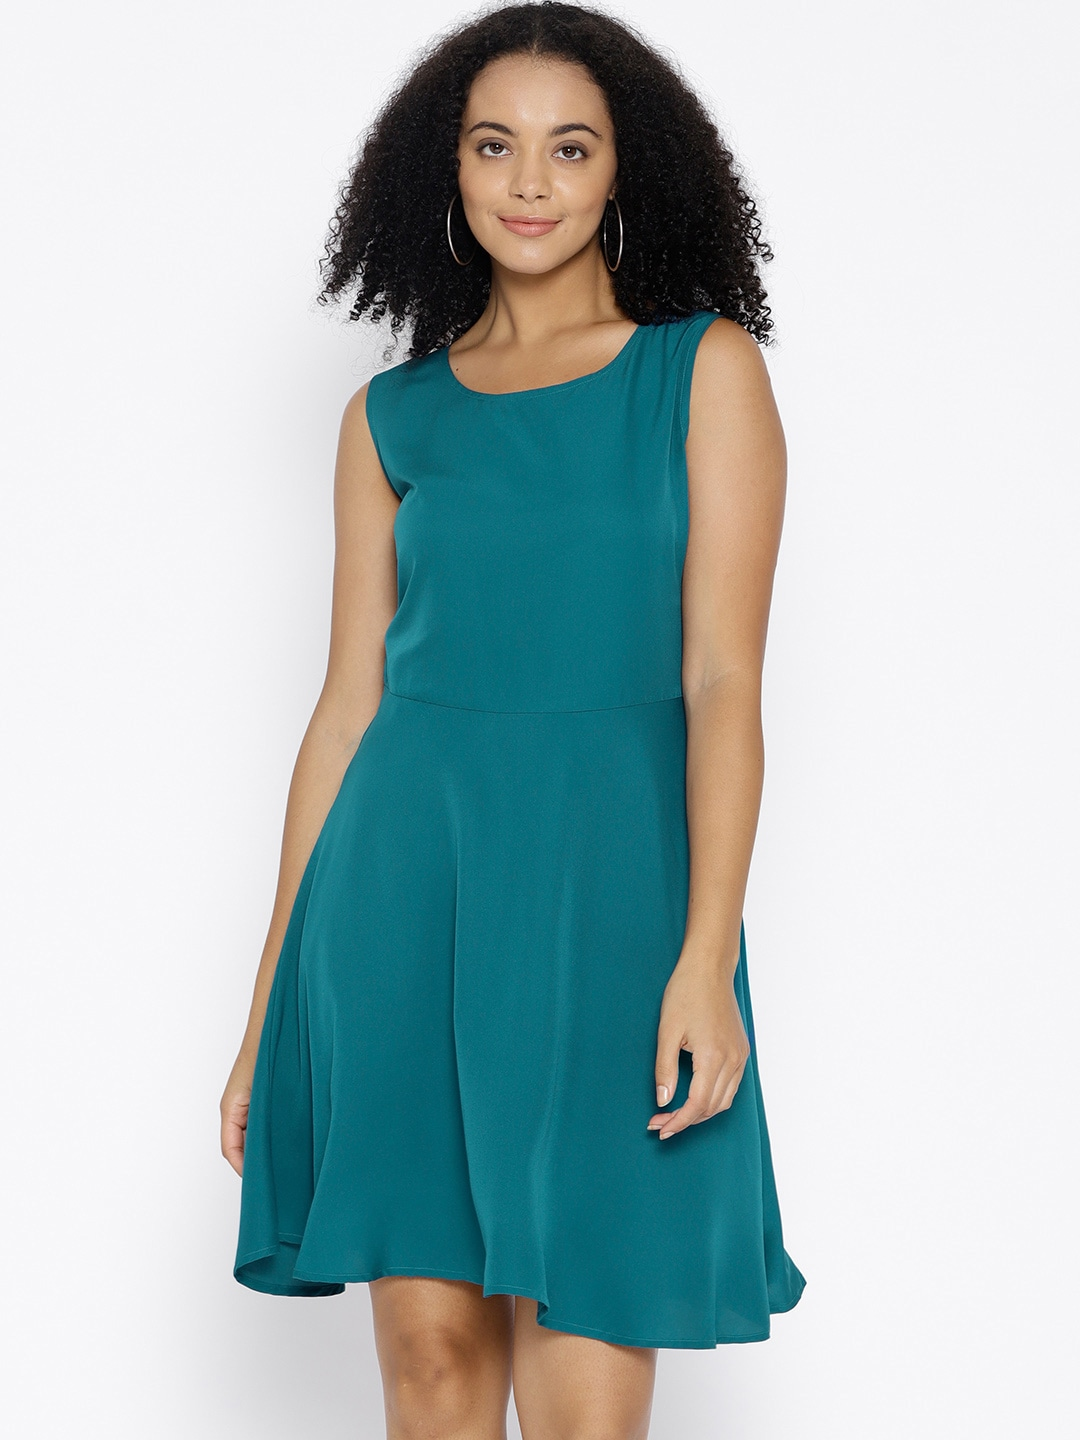 a9950f256f4 Flare Dresses - Buy Flare Dresses online in India